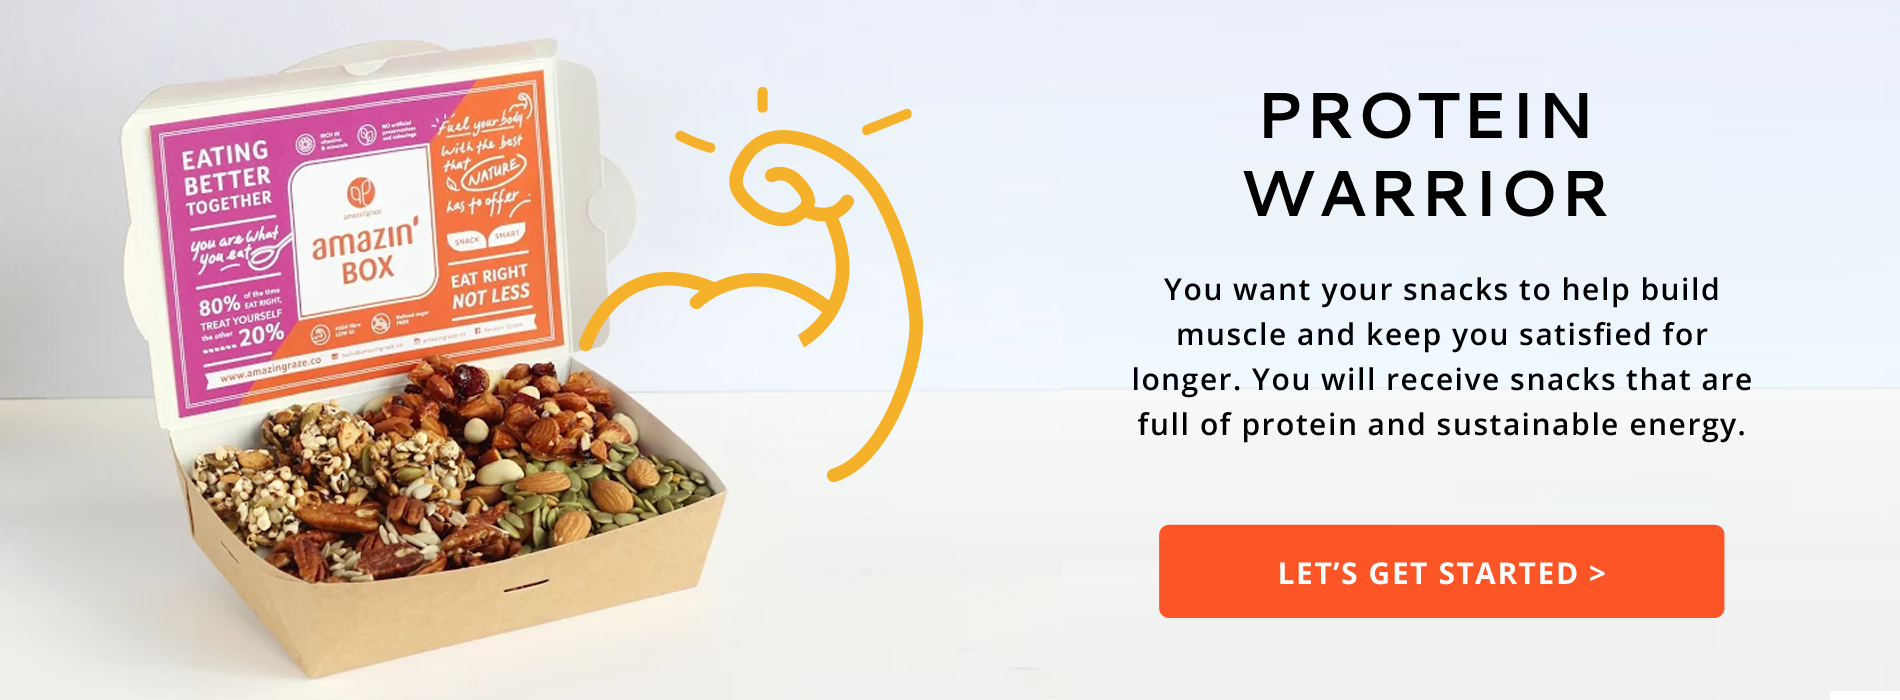 You want your snack to help build muscle and keep you satisfied for longer, you will receive snacks that are full of protein and sustainable energy, written next to a box full of healthy granolas and nuts